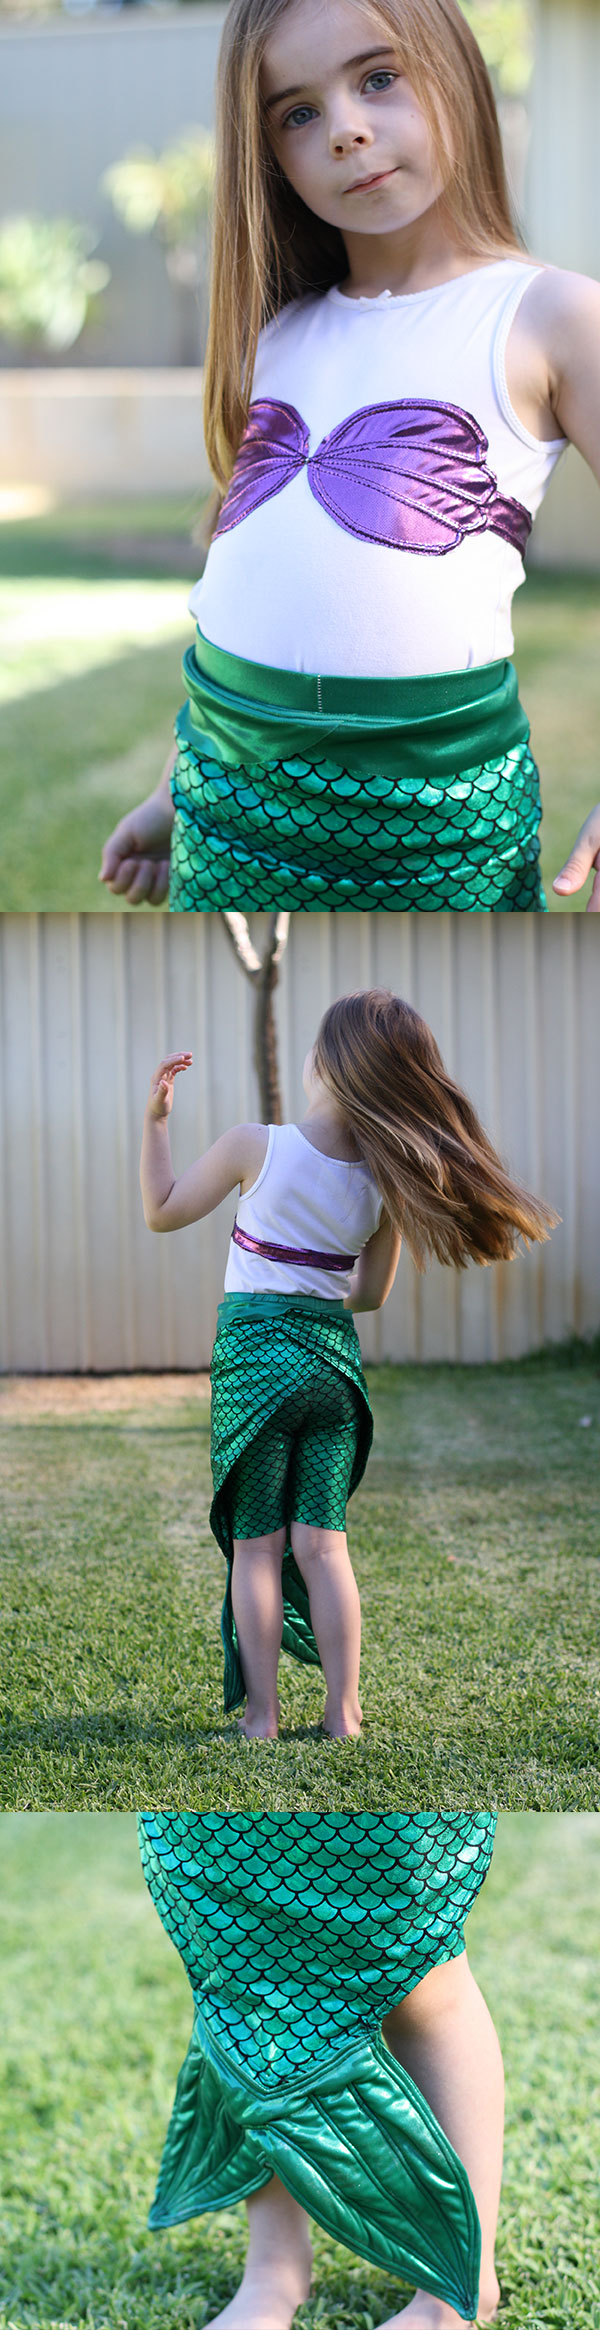 Megan Nielsen Design Diary // The Little Mermaid Costume!